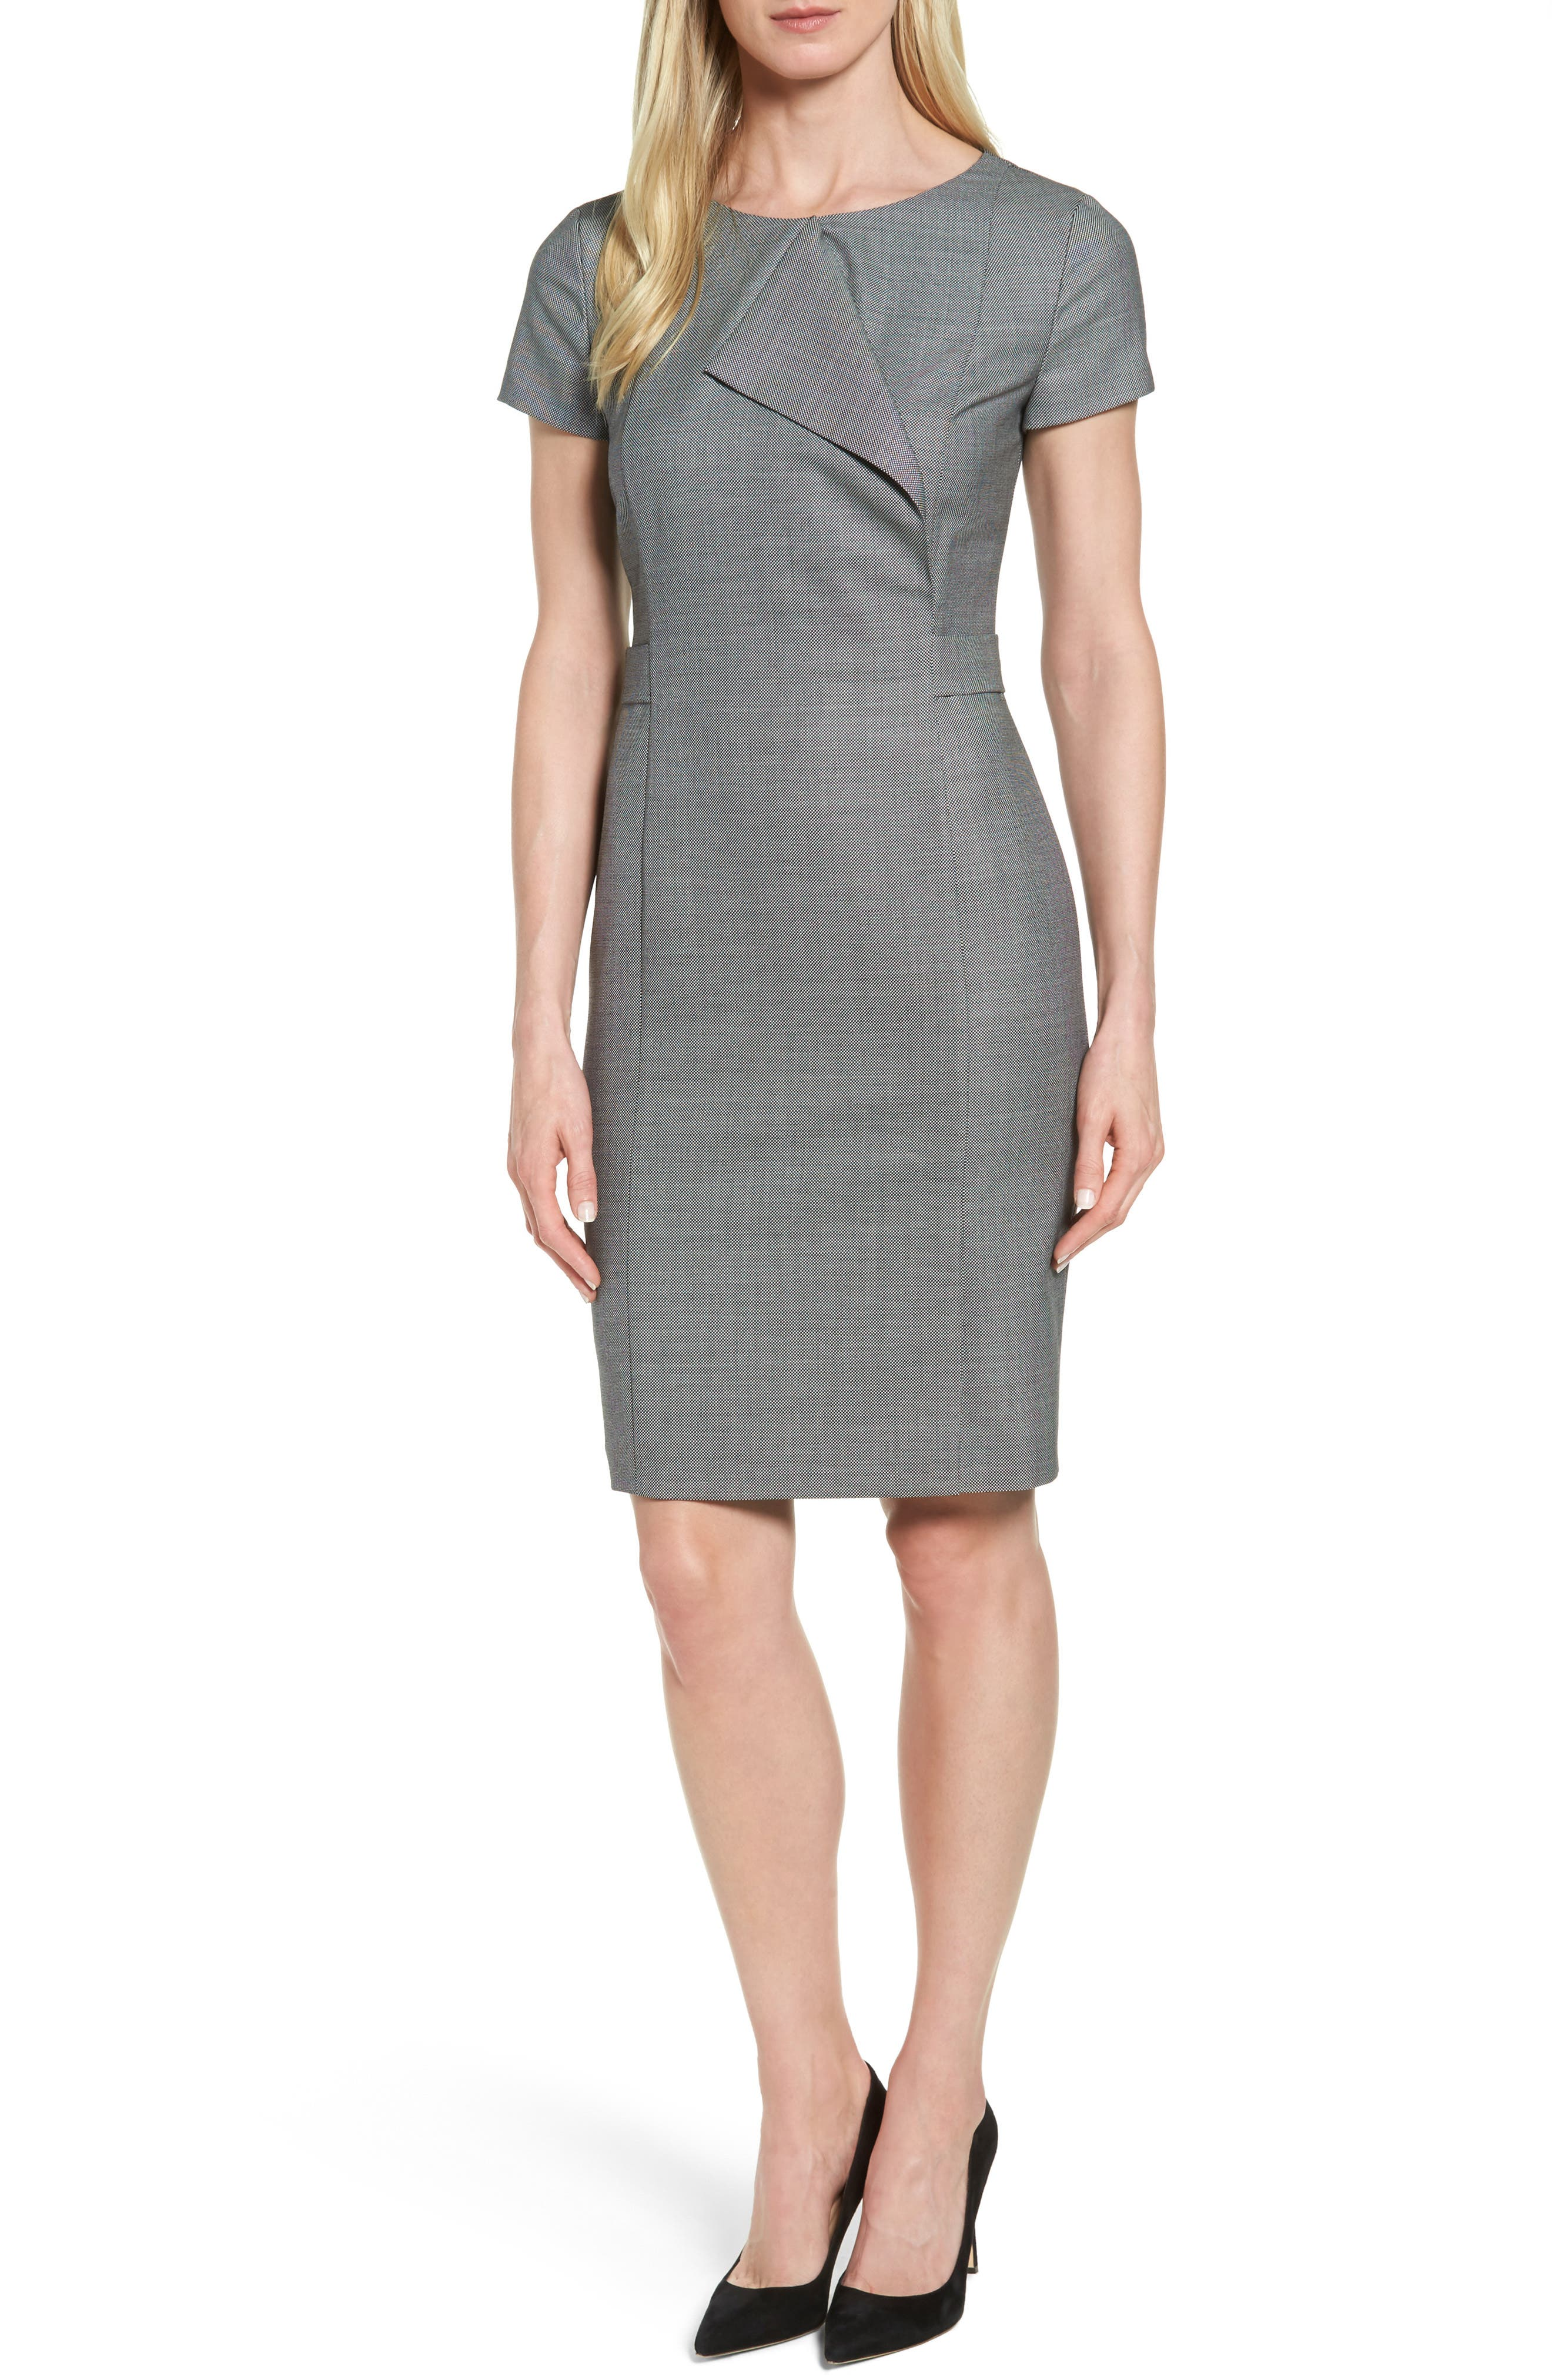 BOSS Danilera Bird's Eye Wool Sheath Dress